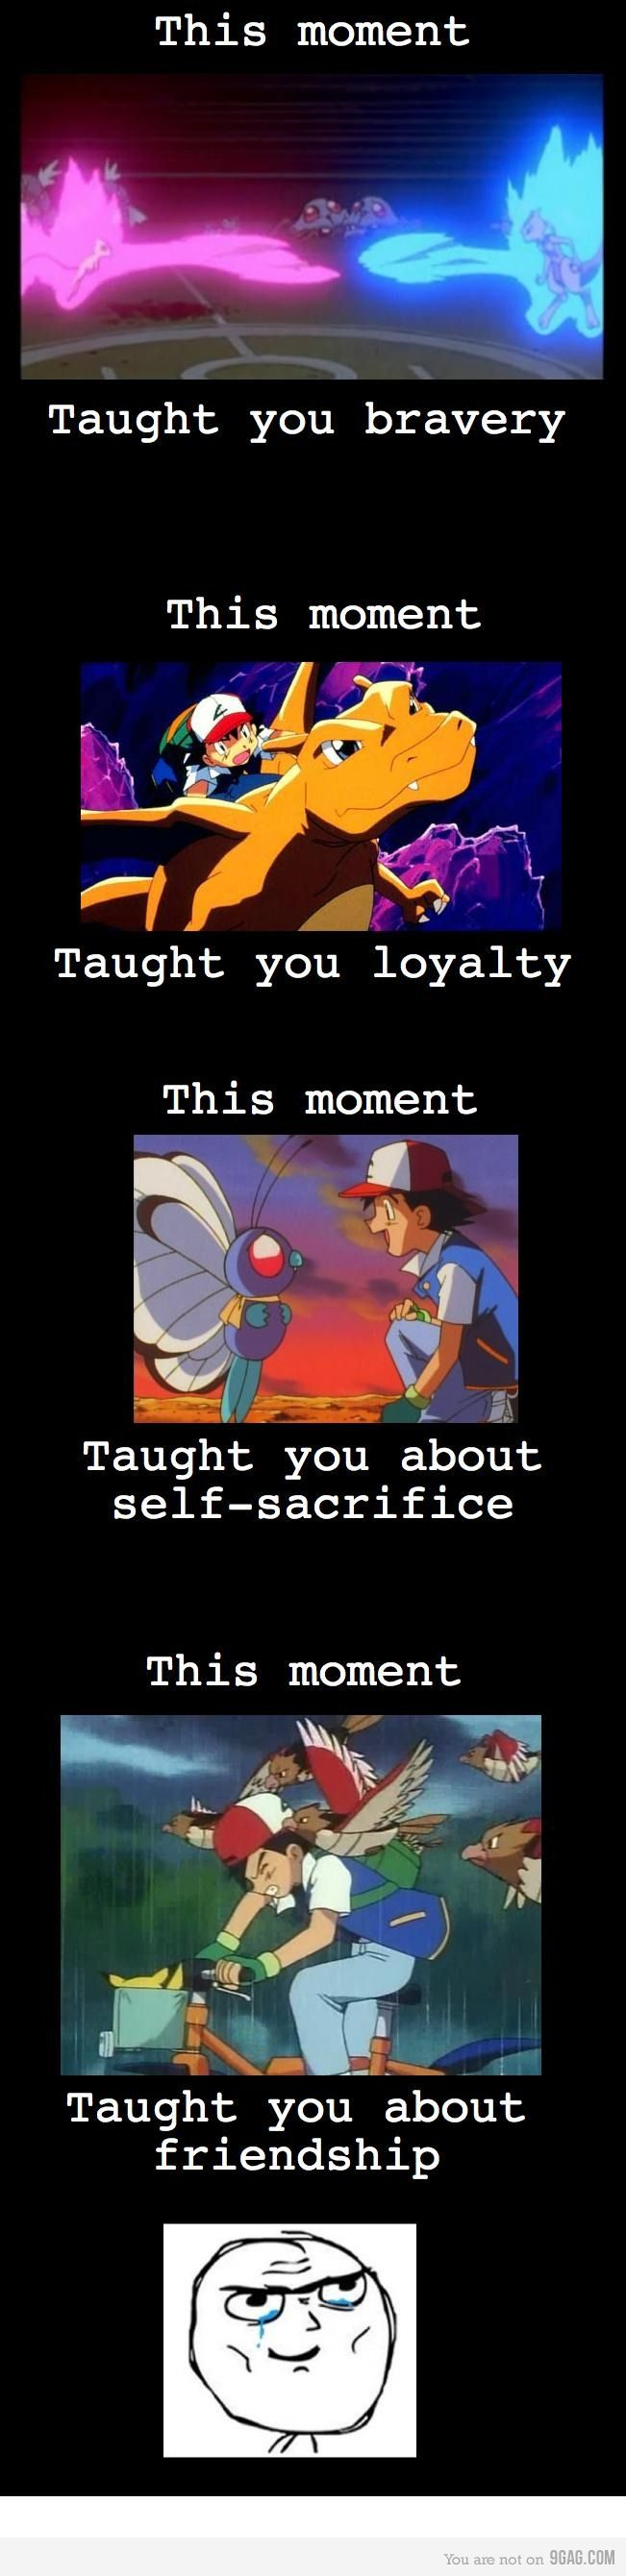 Some of the greatest things I loved about Pokemon. Those stories, man... those lessons. Friendship and courage.